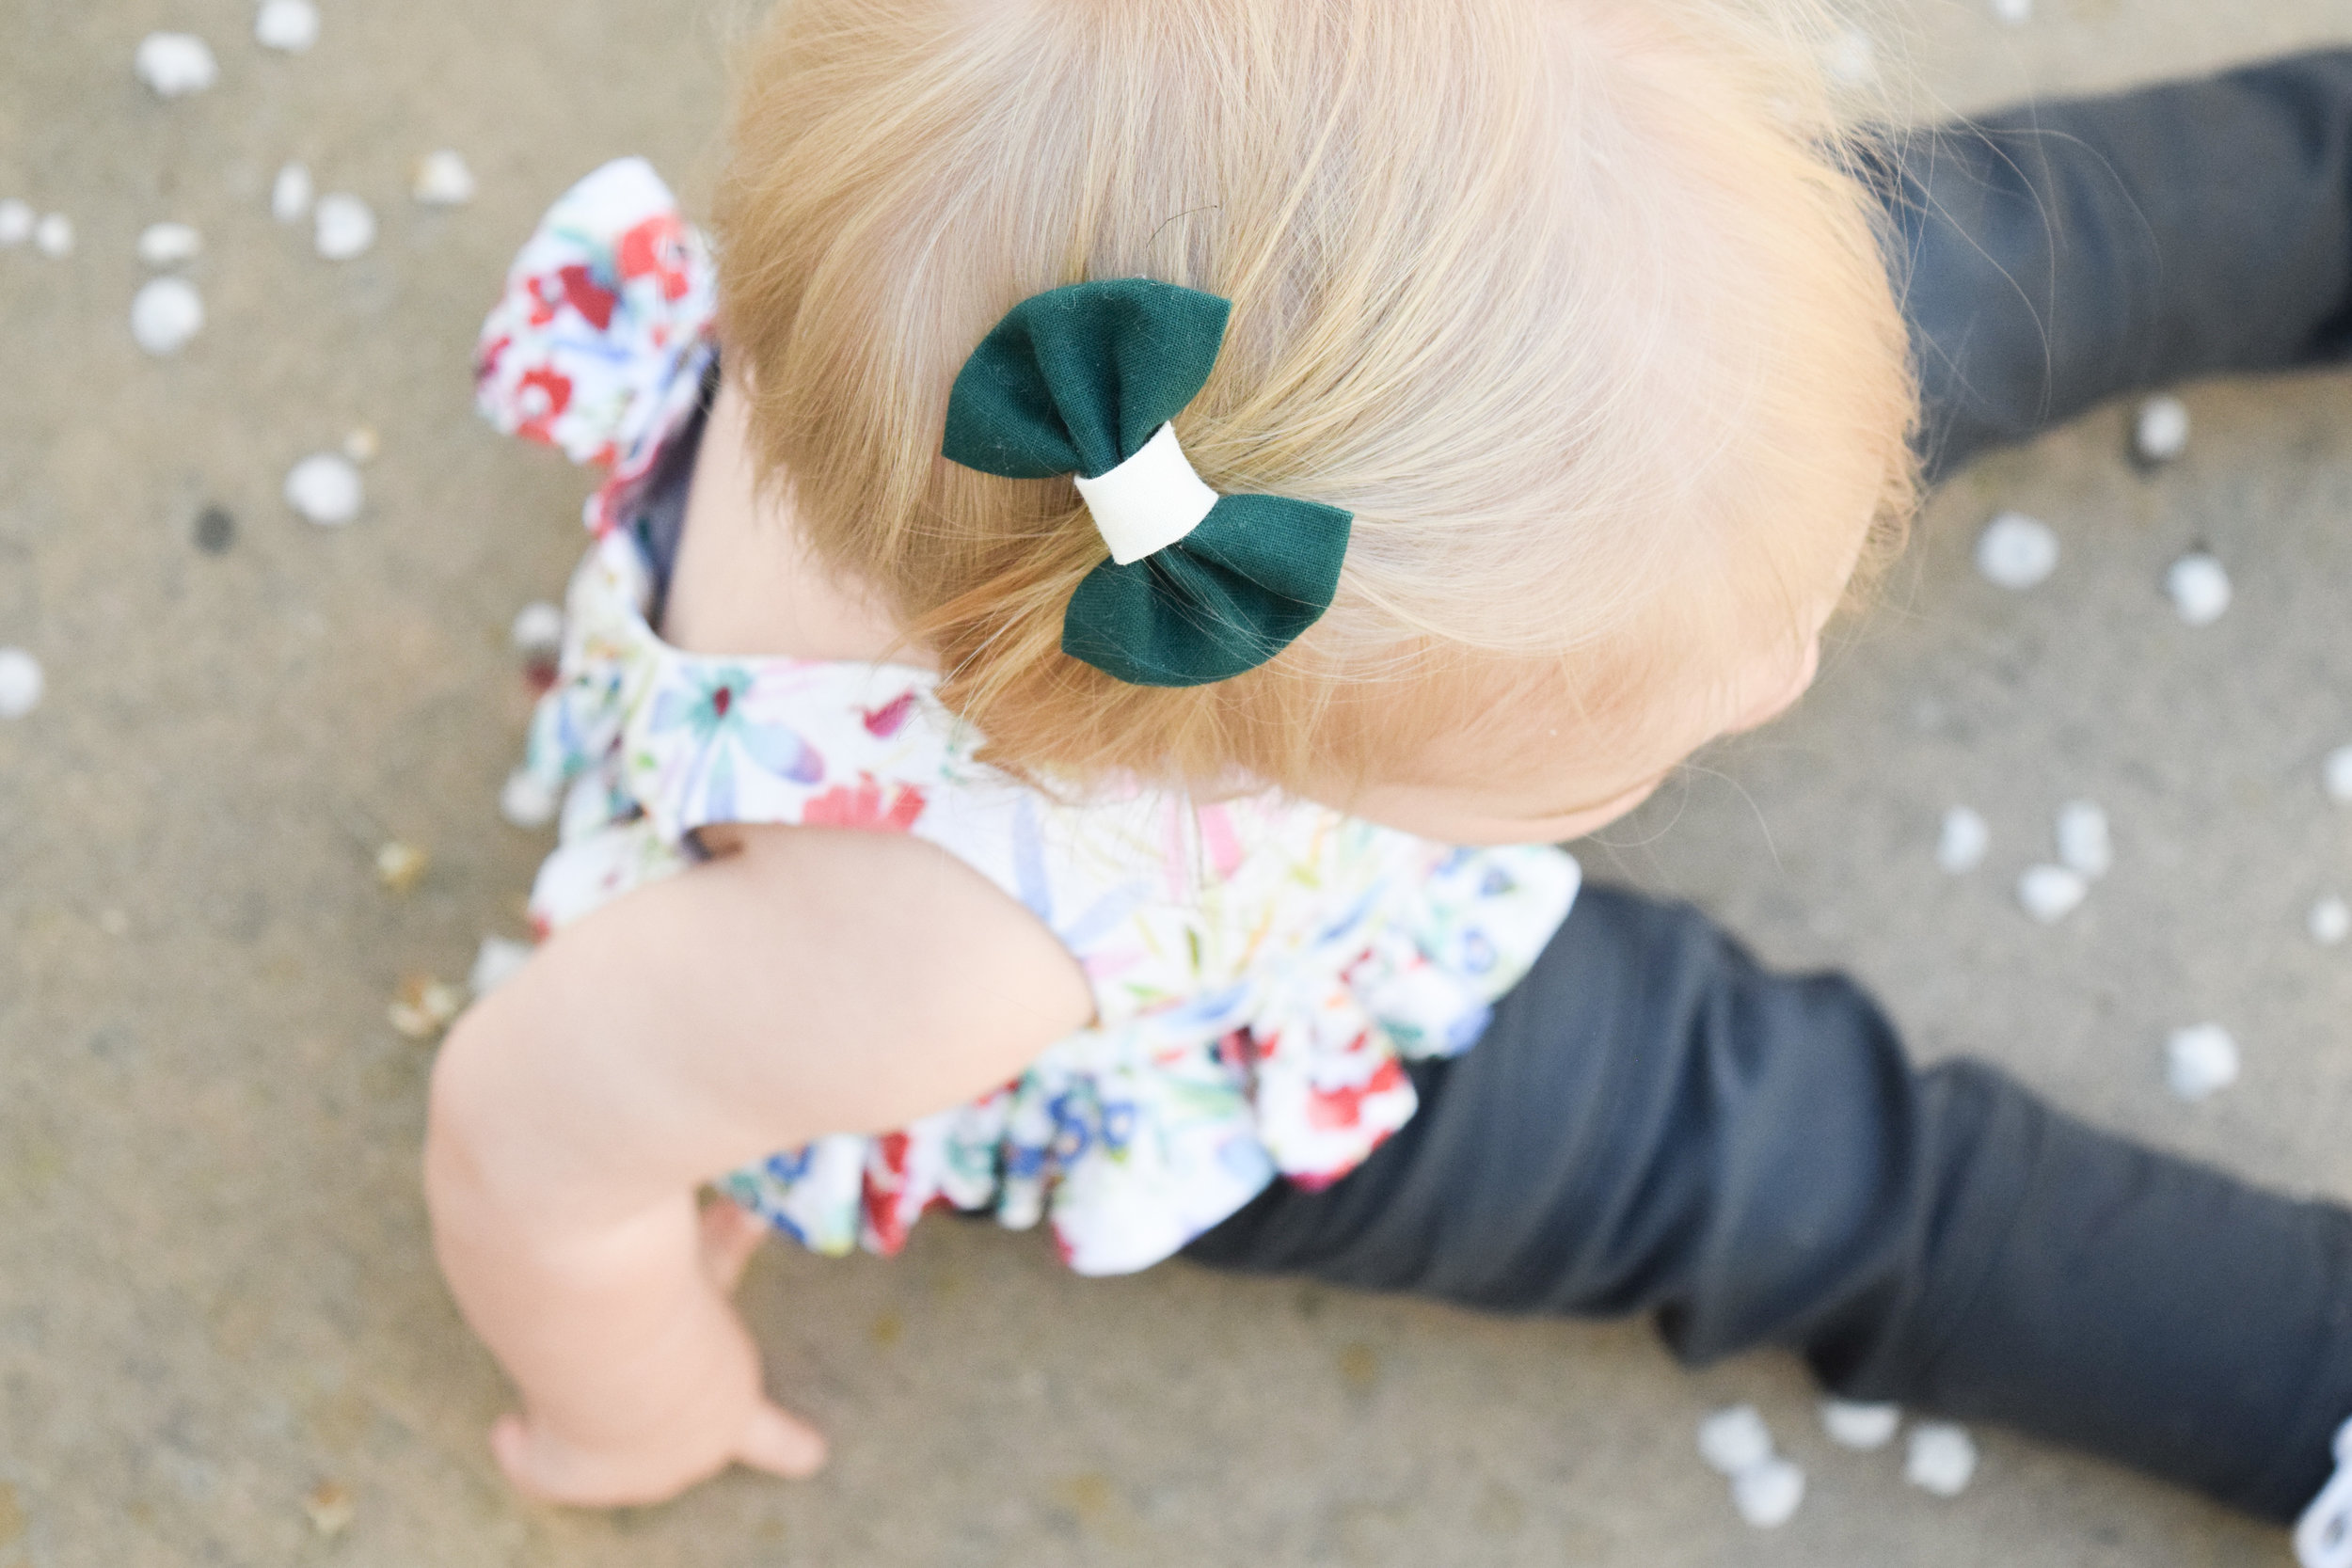 Baby Fashion - Baby Spring Floral Crop Top - Baby Converse - Baby Skinny Jeans